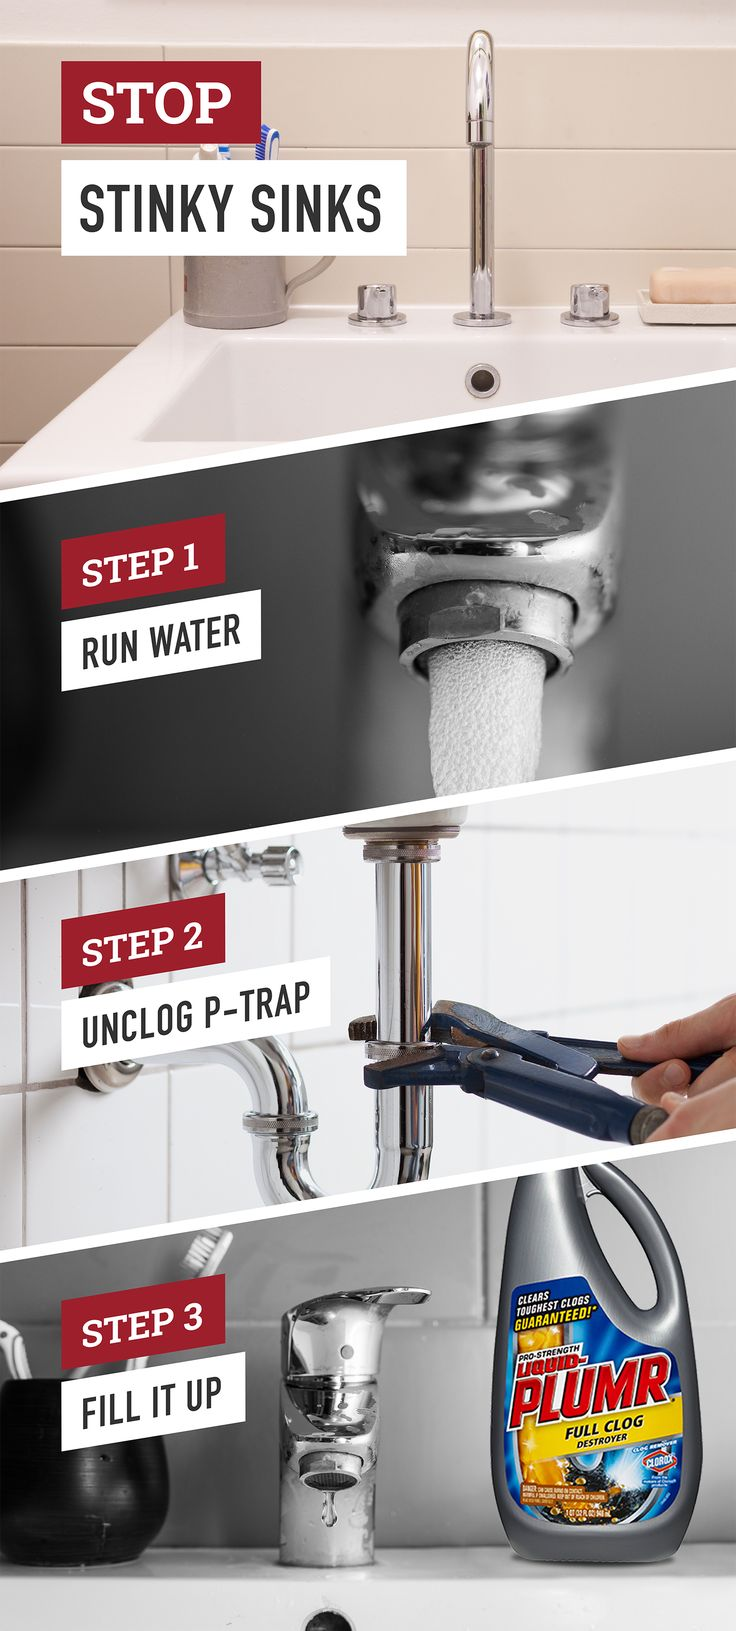 Nobody wants their kitchen or bathroom sink smelling like the sewer. Follow these simple steps to help prevent your drains from smelling up your home. To clear a clog and leave a pleasant scent behind, use Liquid-Plumr® Full Clog Destroyer™.